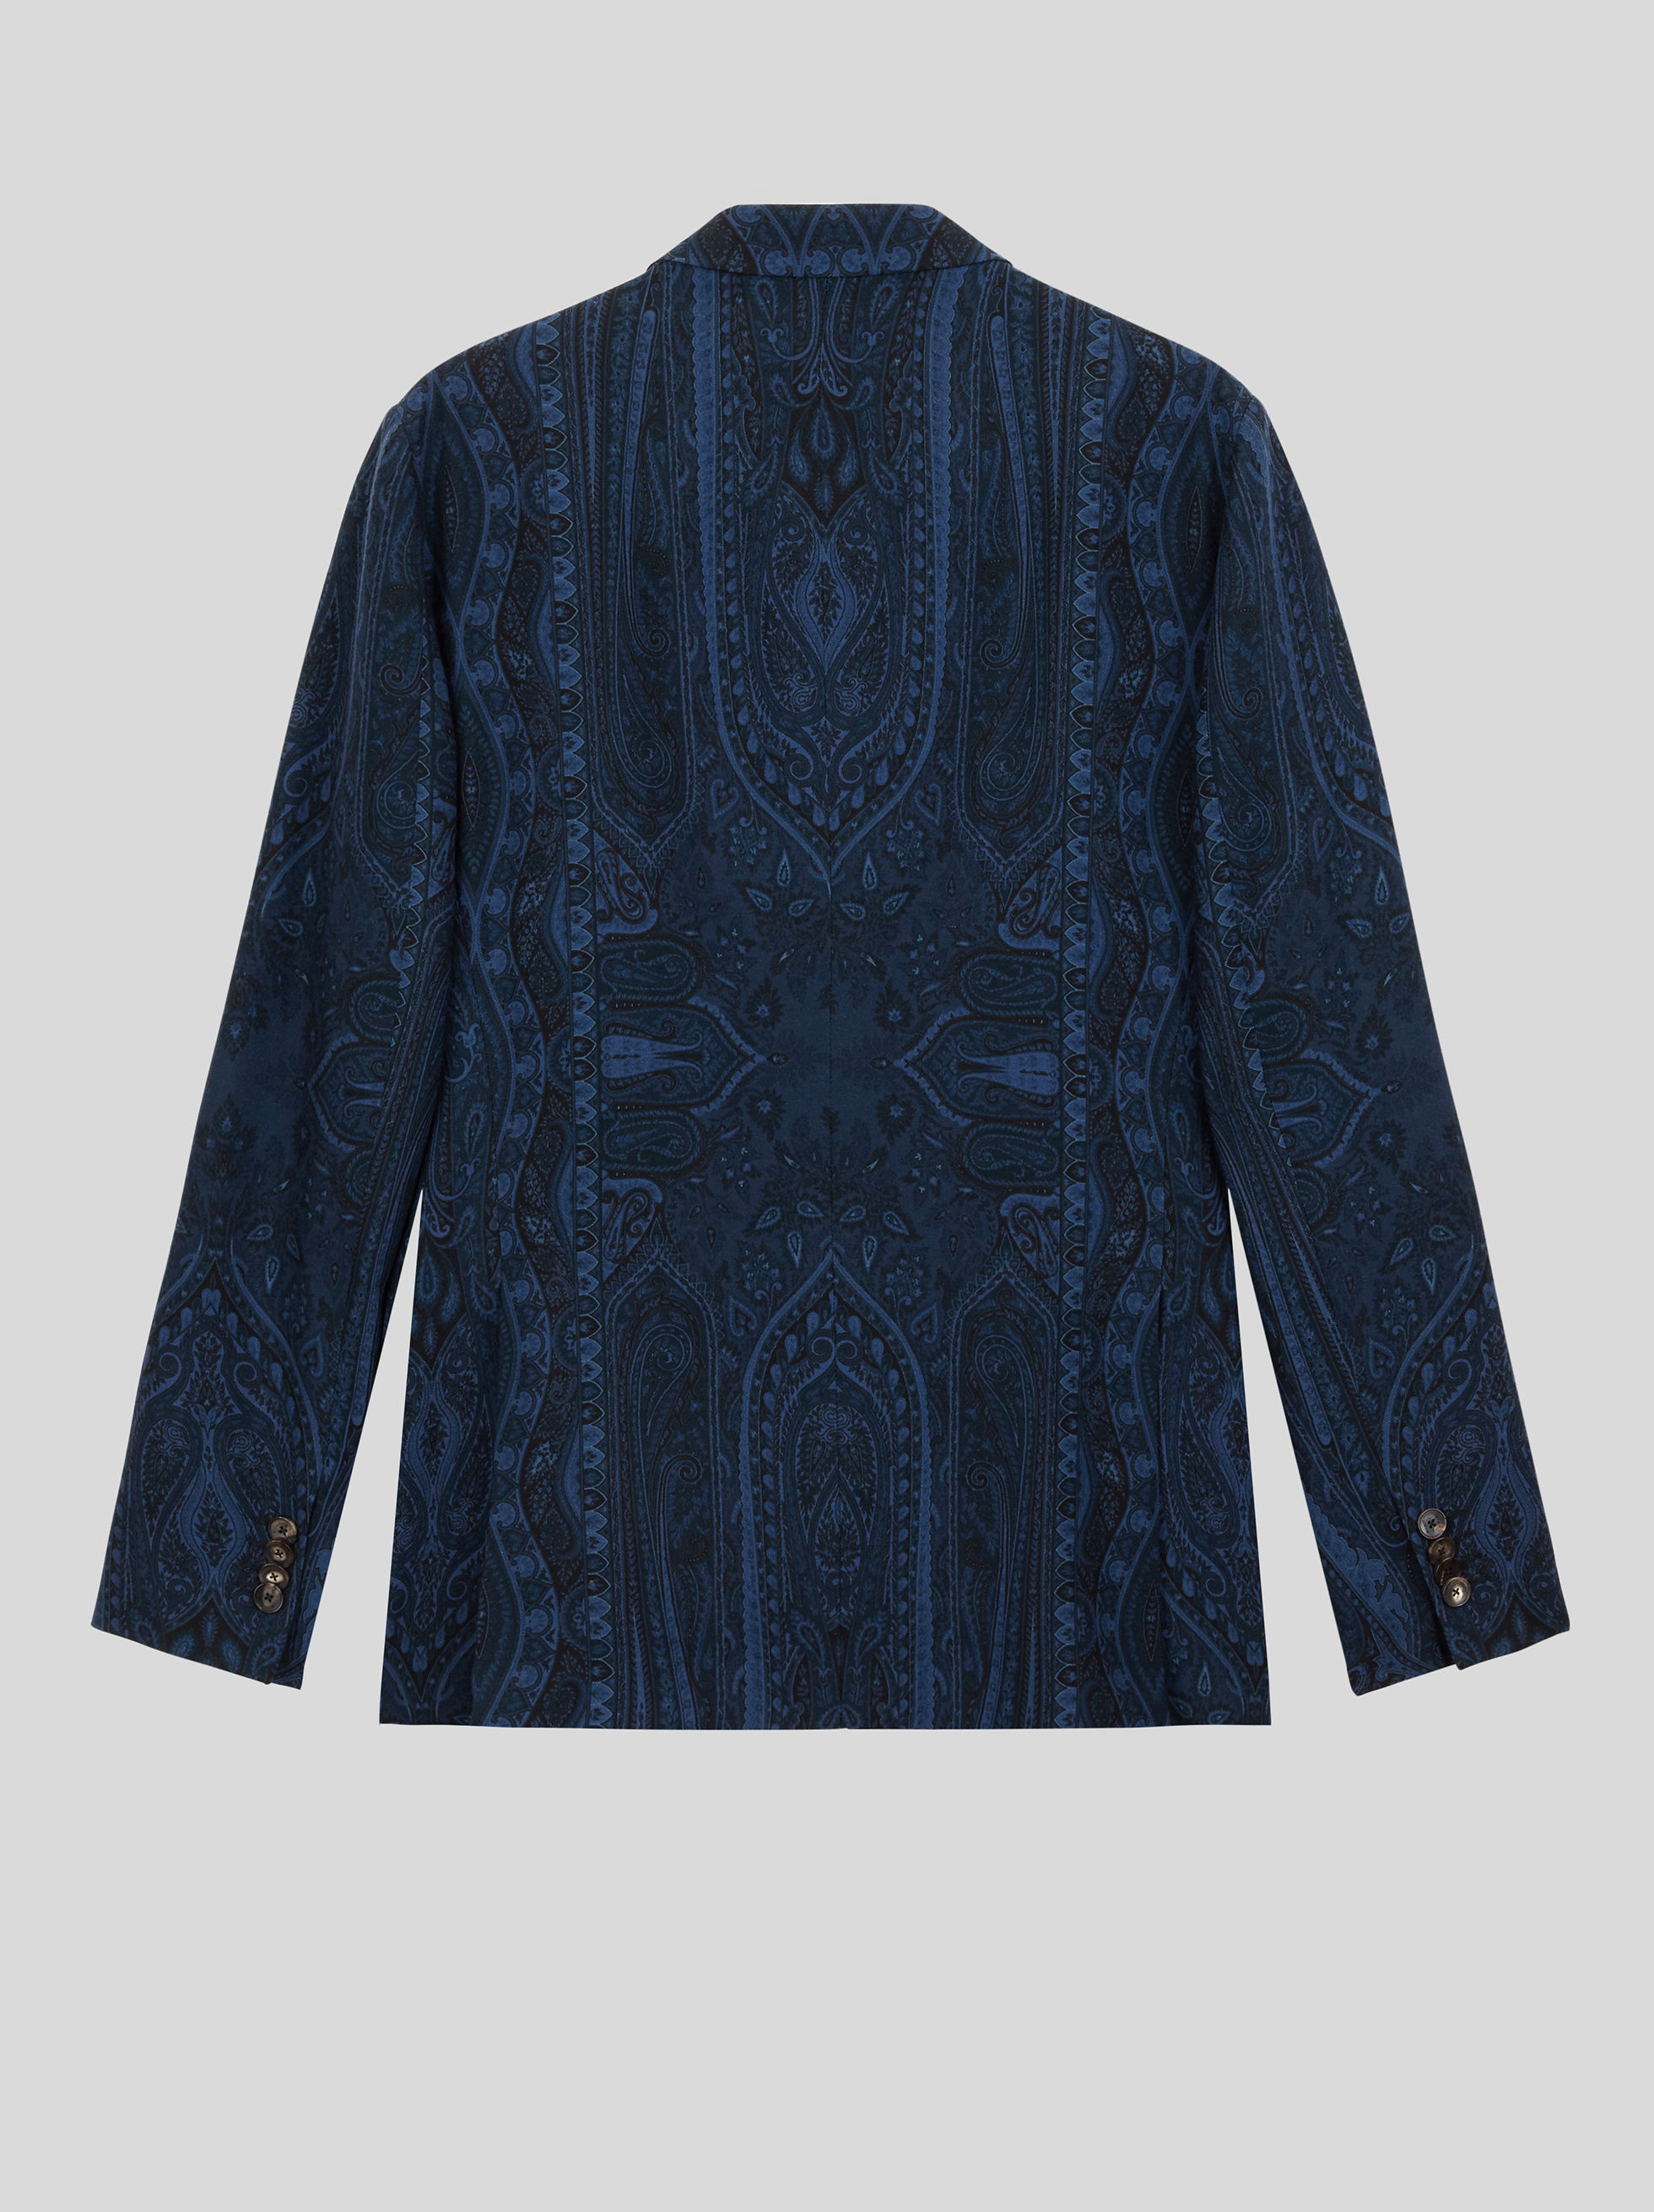 TAILORED JACKET IN PAISLEY WOOL